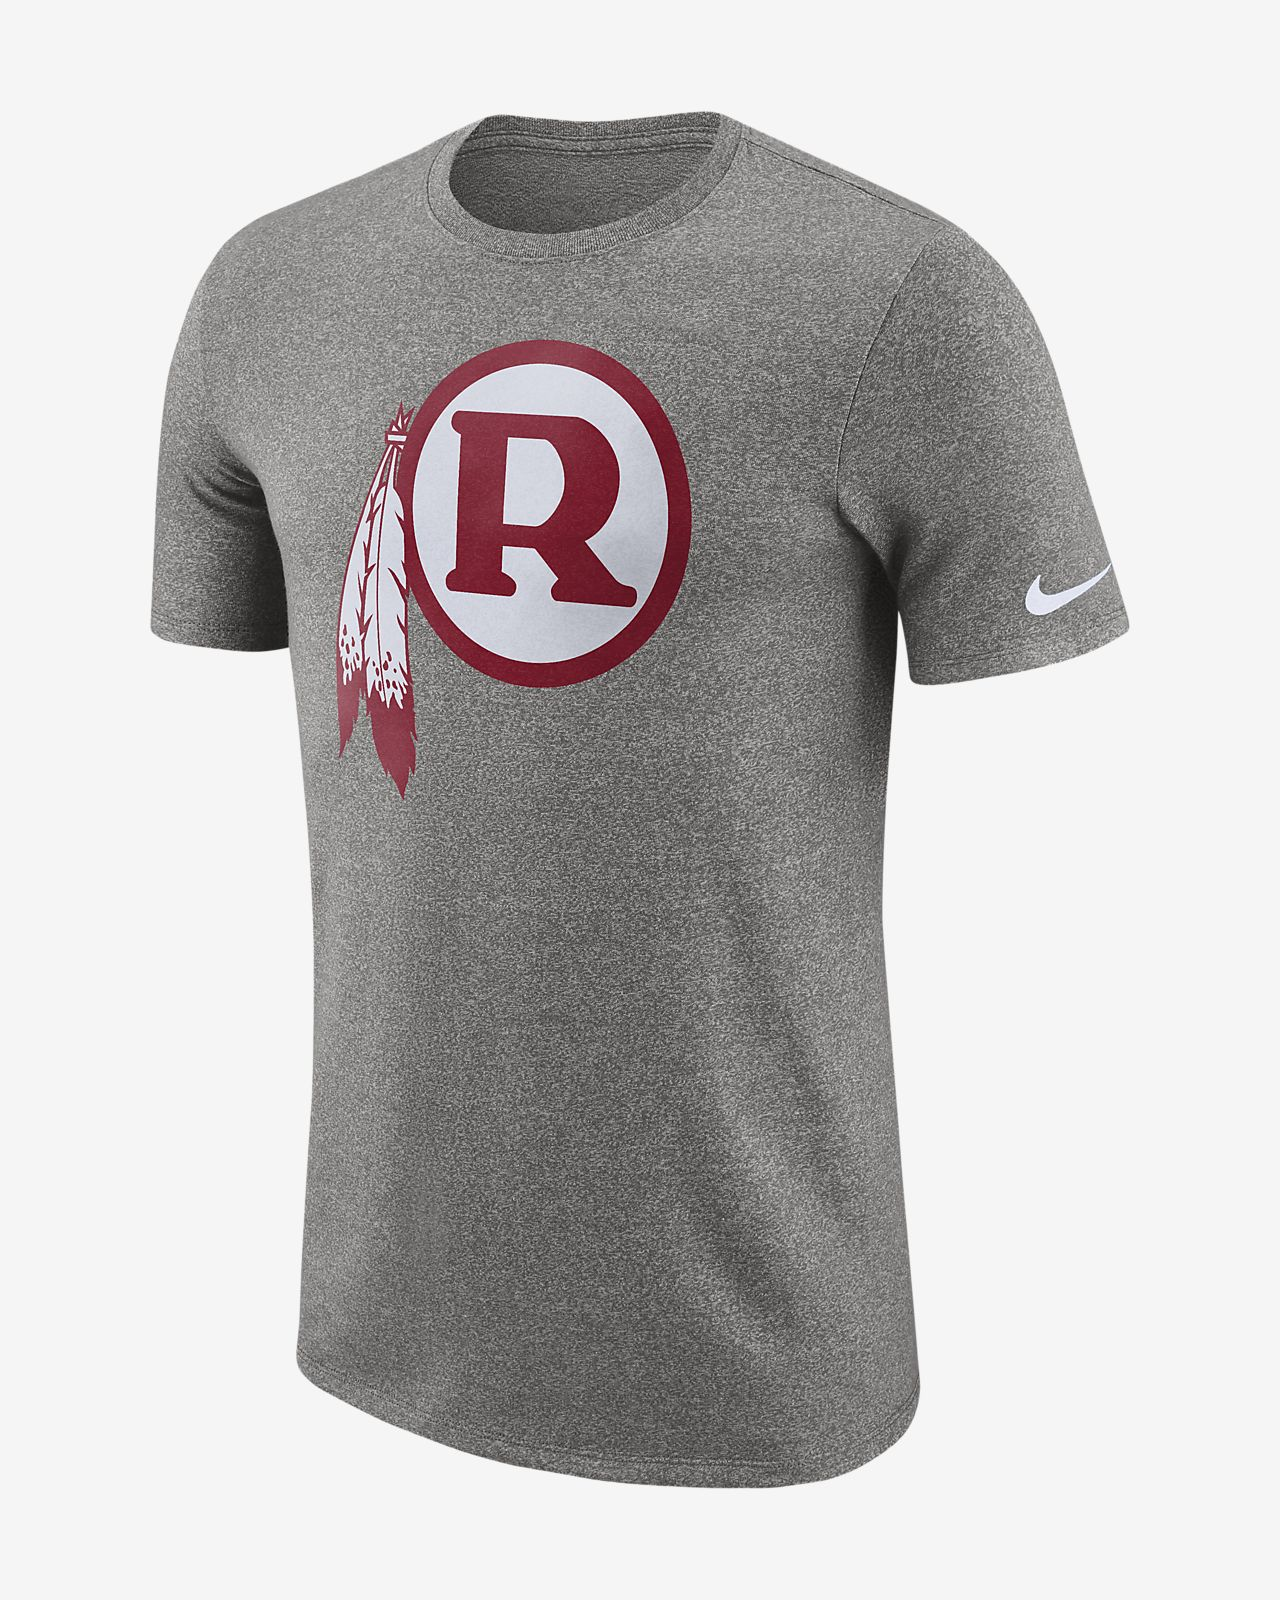 Nike (NFL Redskins) Men's T-Shirt